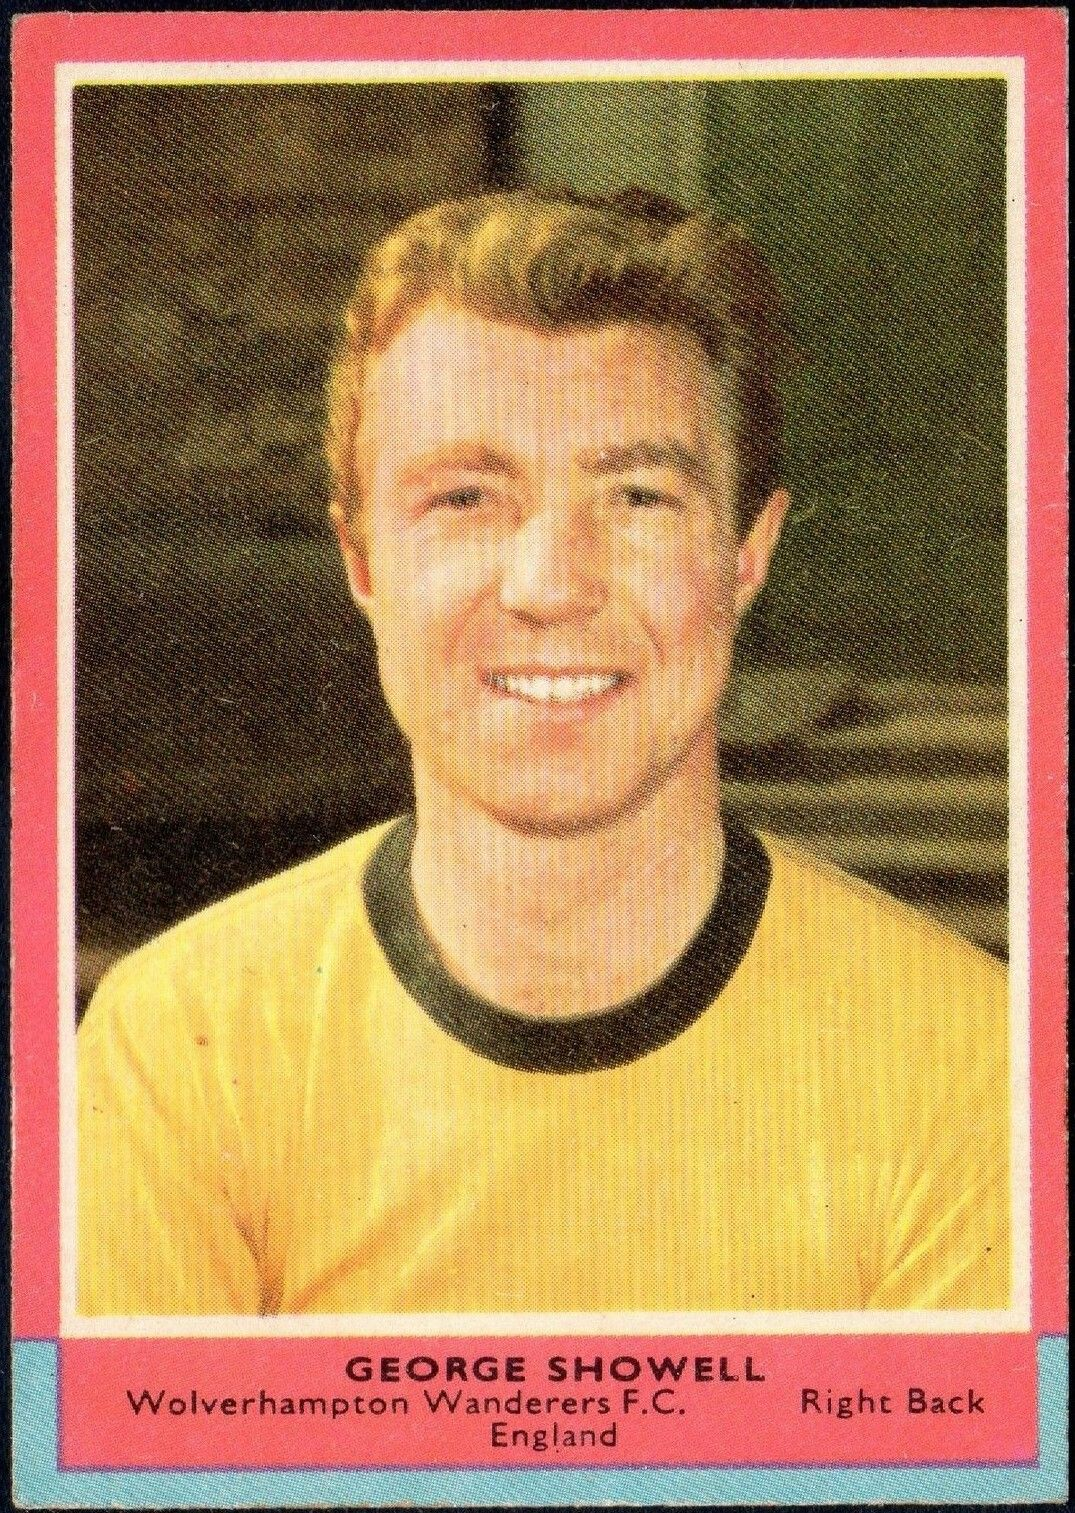 George Showell of Wolves in 1964.